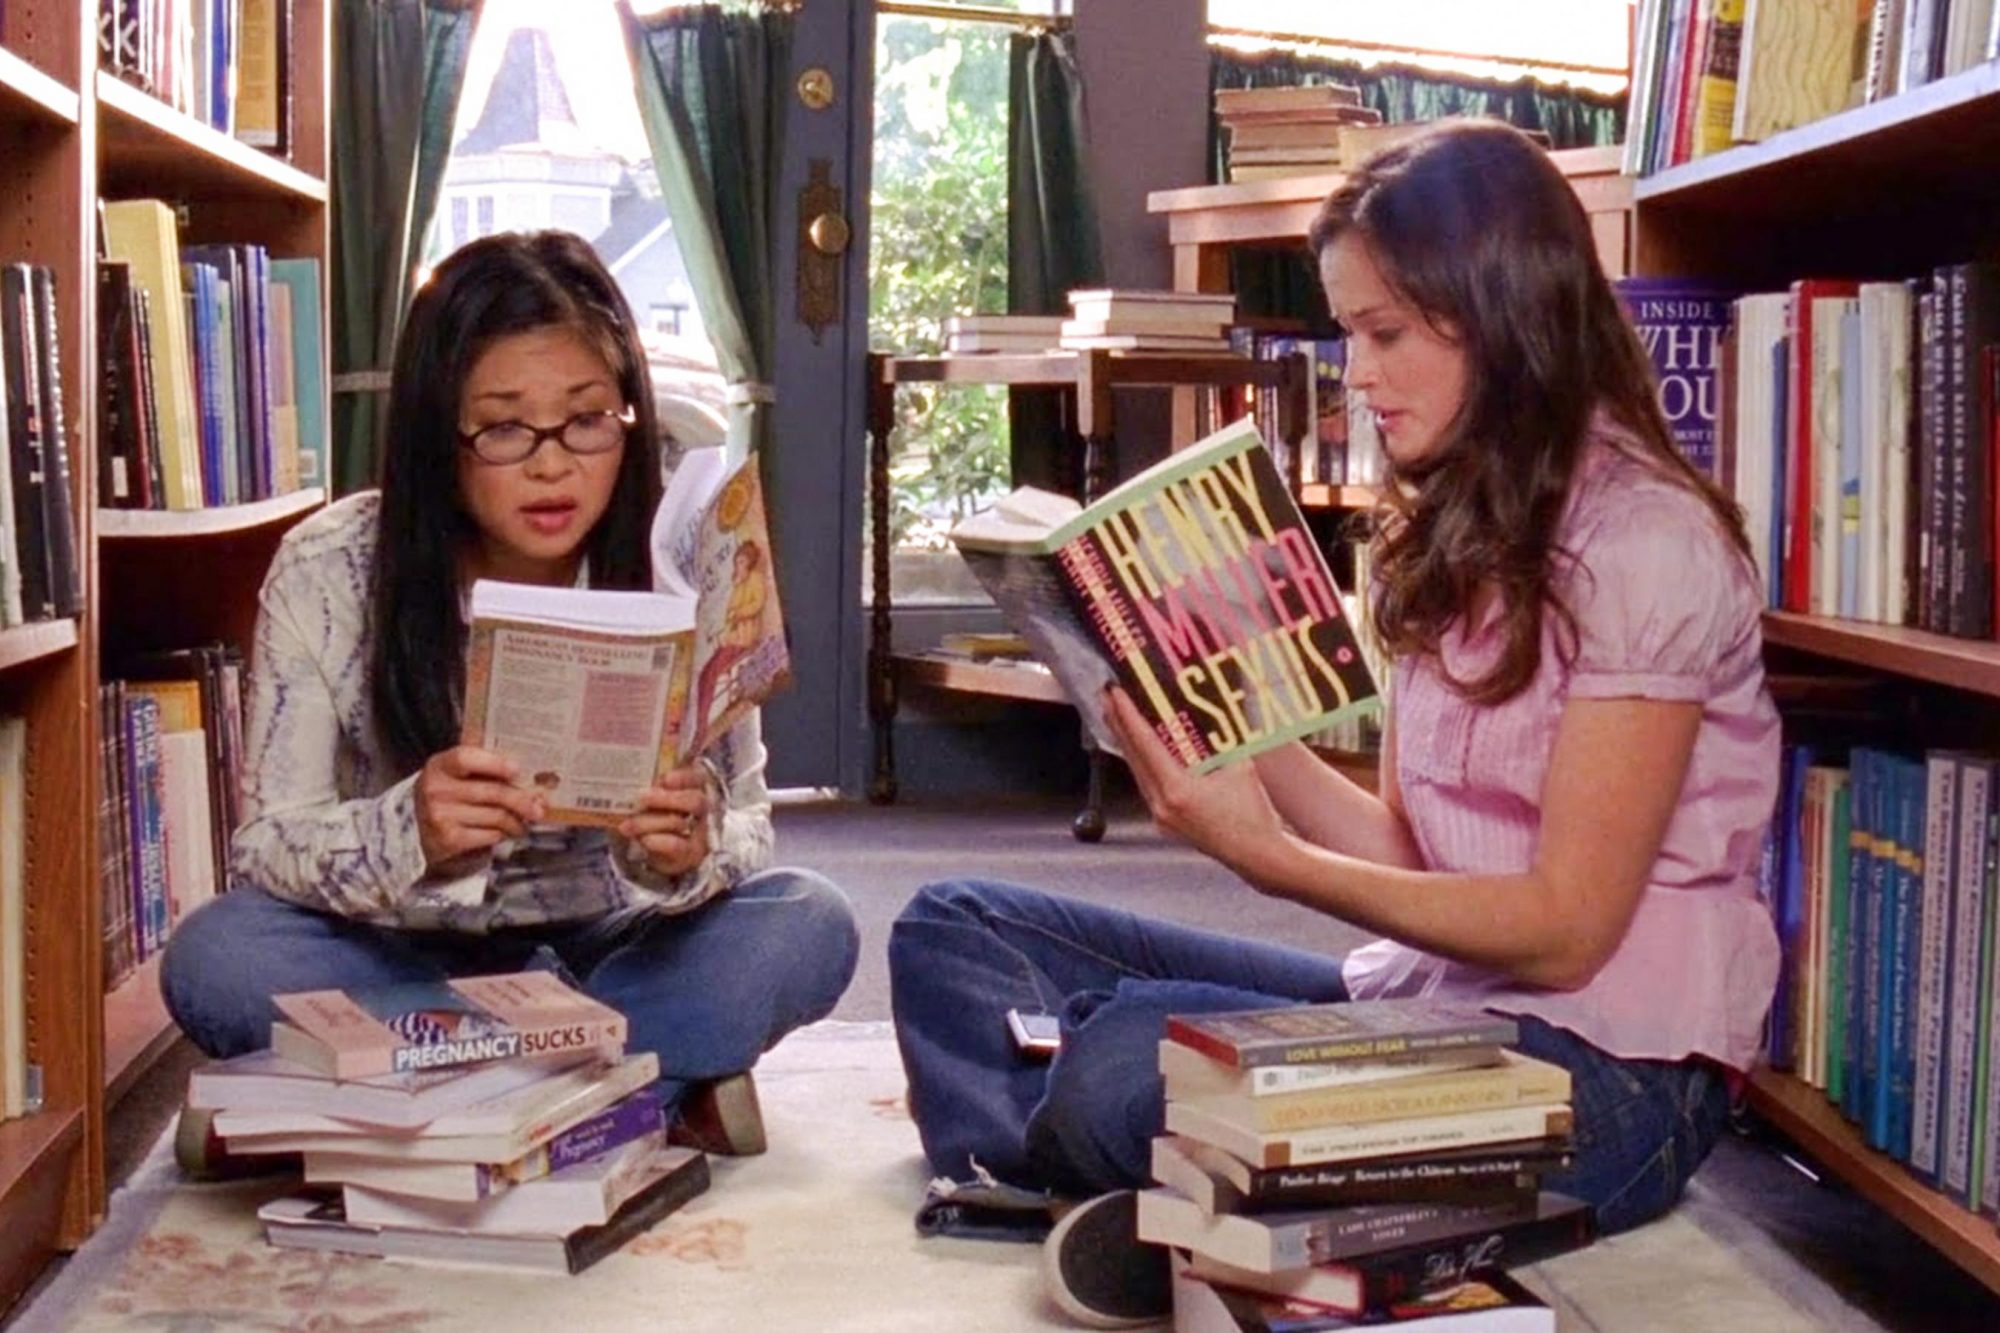 Stars Hollow Books, Gilmore Girls